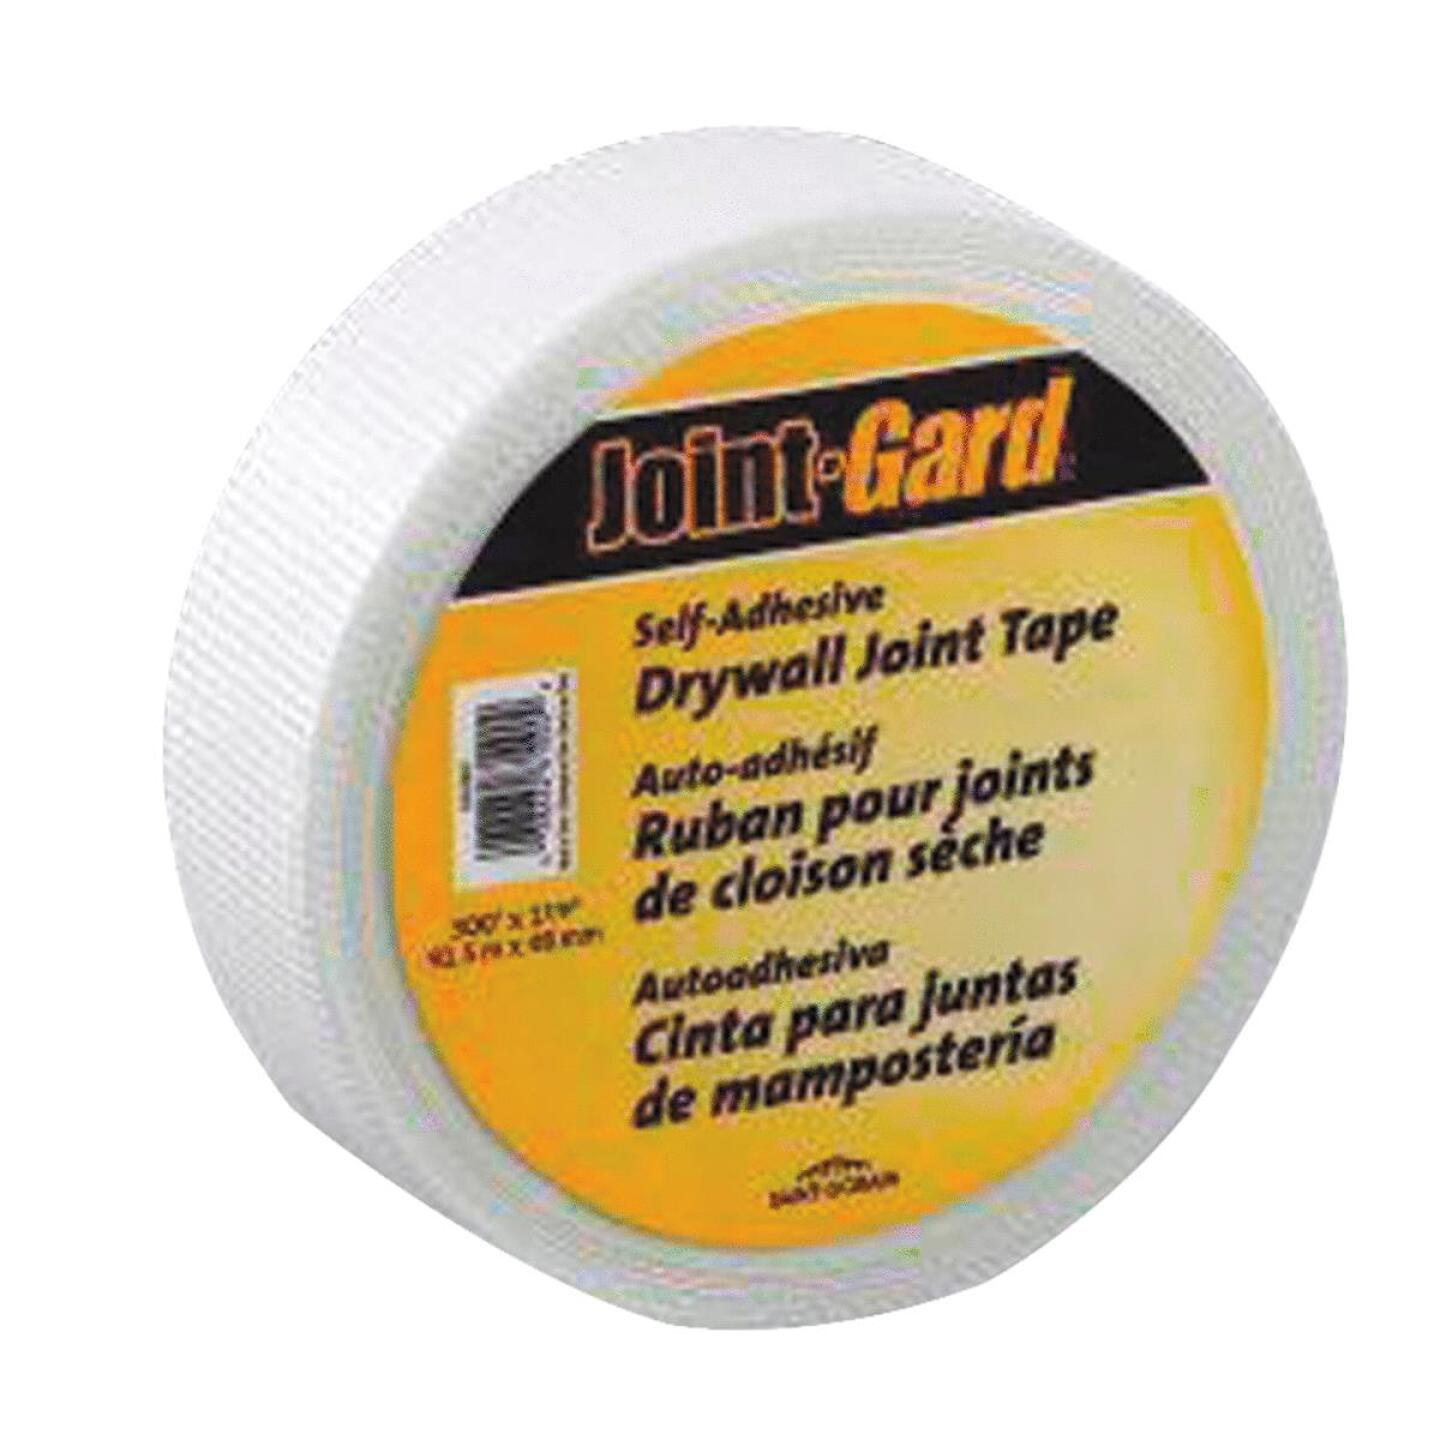 Joint-Gard 1-7/8 In. x 300 Ft. Self Adhesive Drywall Joint Tape Image 1